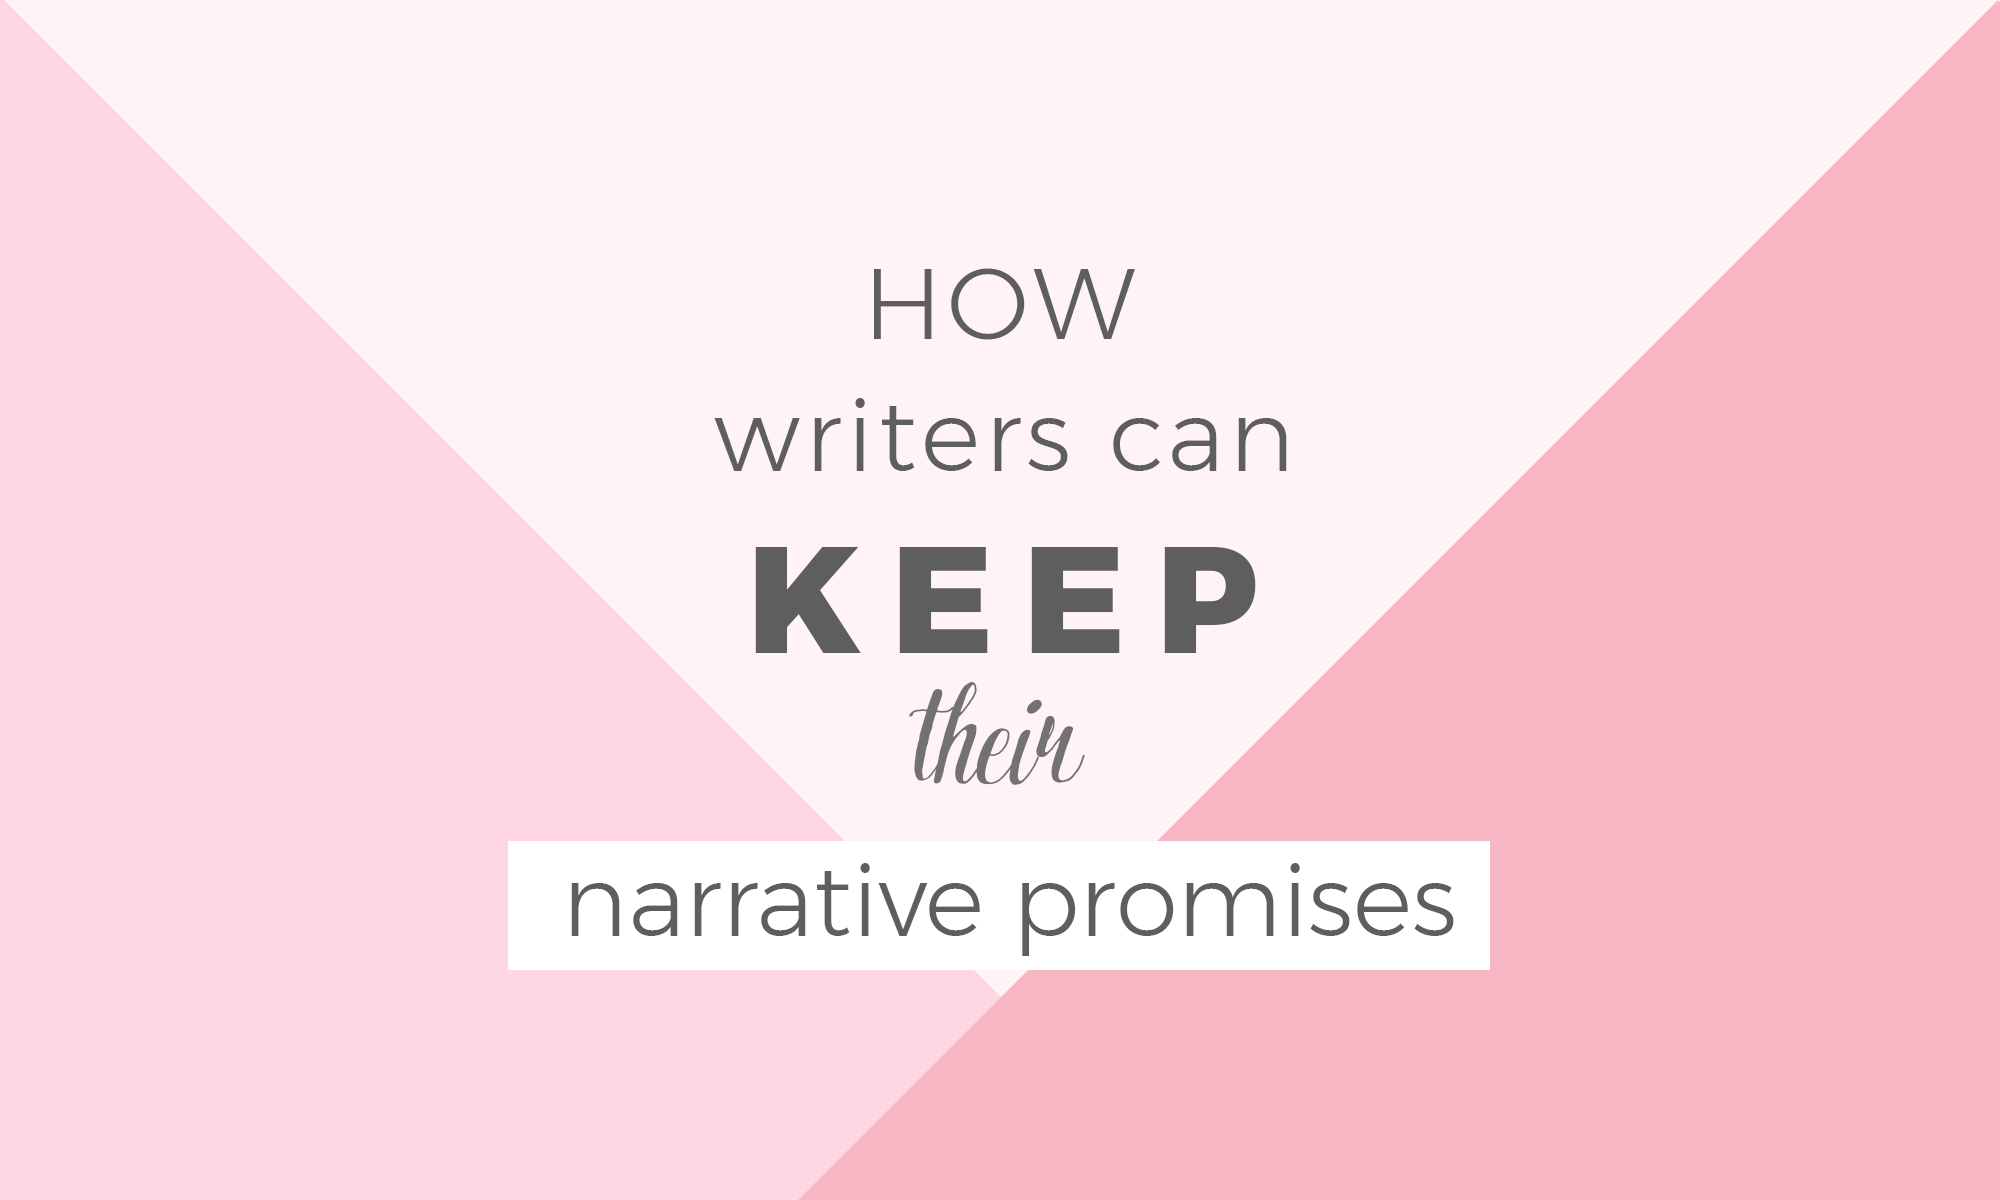 How To Keep Your Narrative Promises